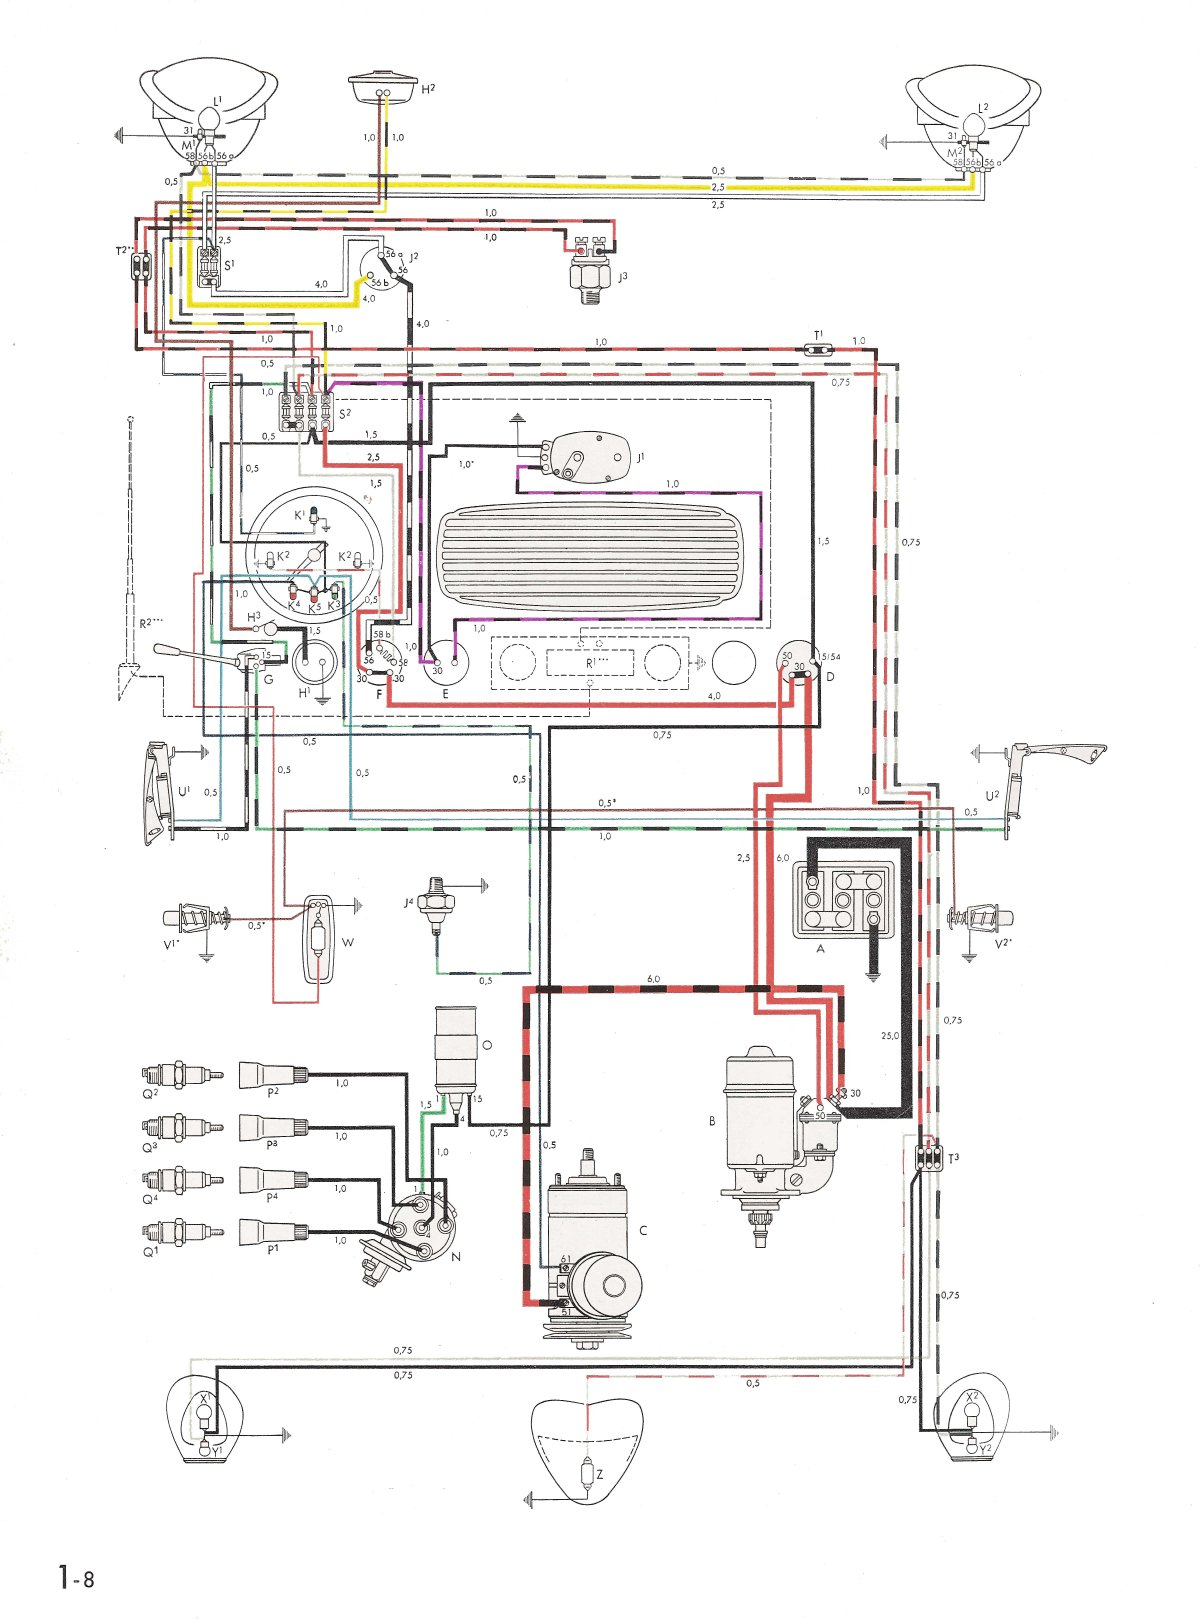 hight resolution of thesamba com type 1 wiring diagrams vw t2 1979 wiring diagram 1979 vw wiring diagram